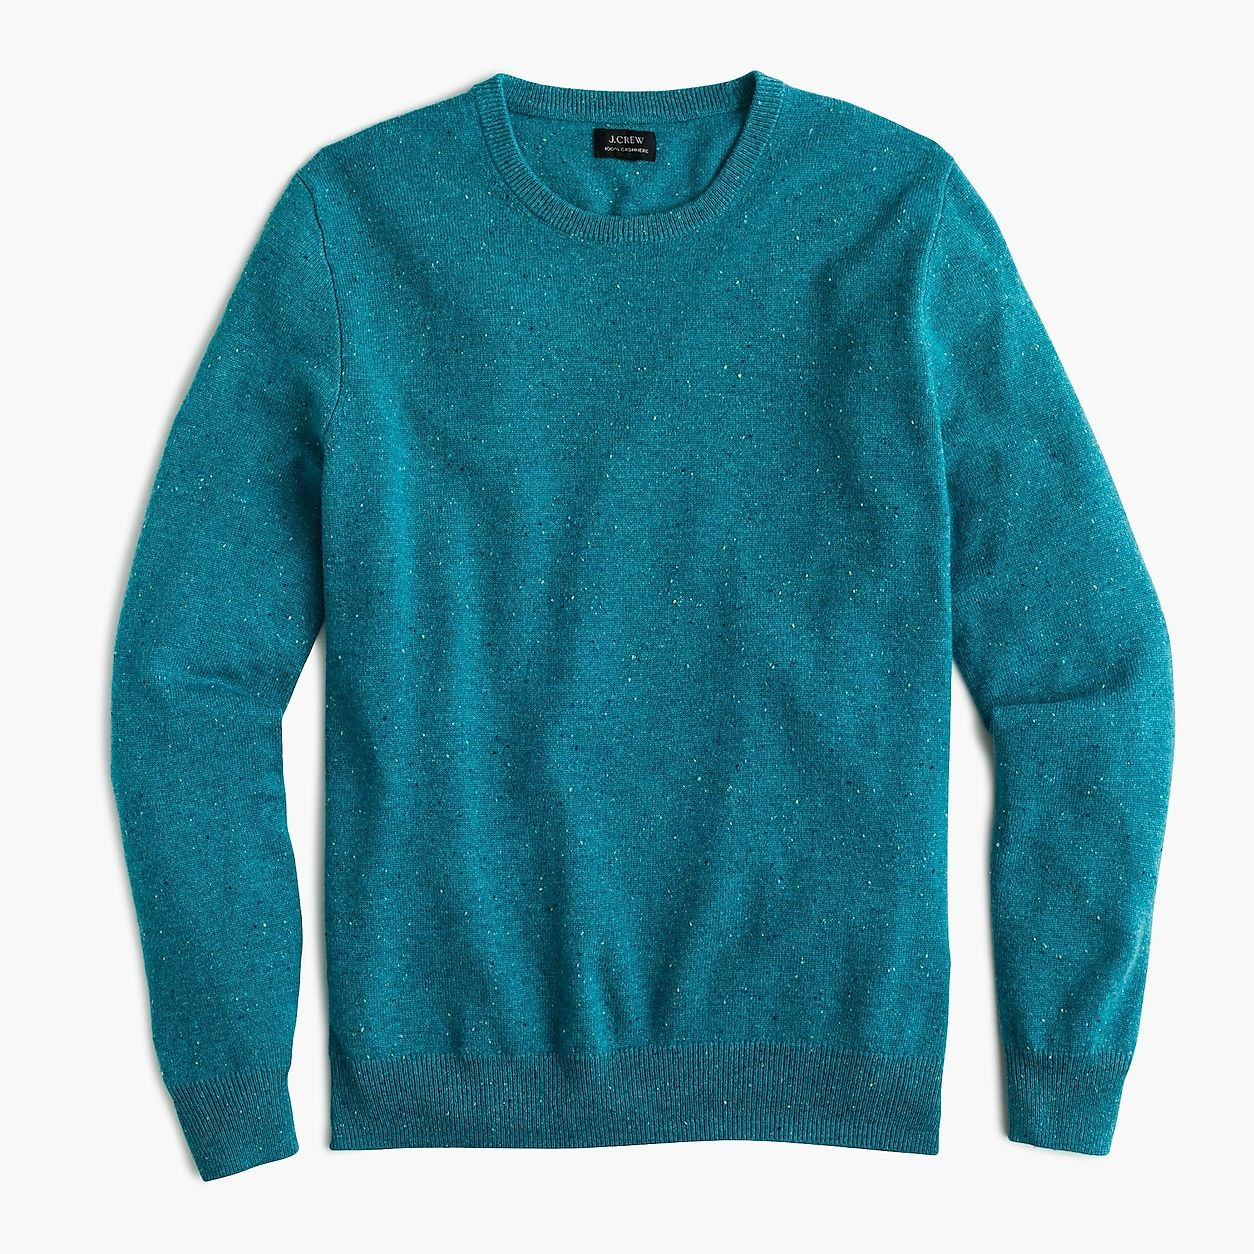 29aad1d7b74c Everyday Cashmere Crewneck Sweater In Donegal Knit